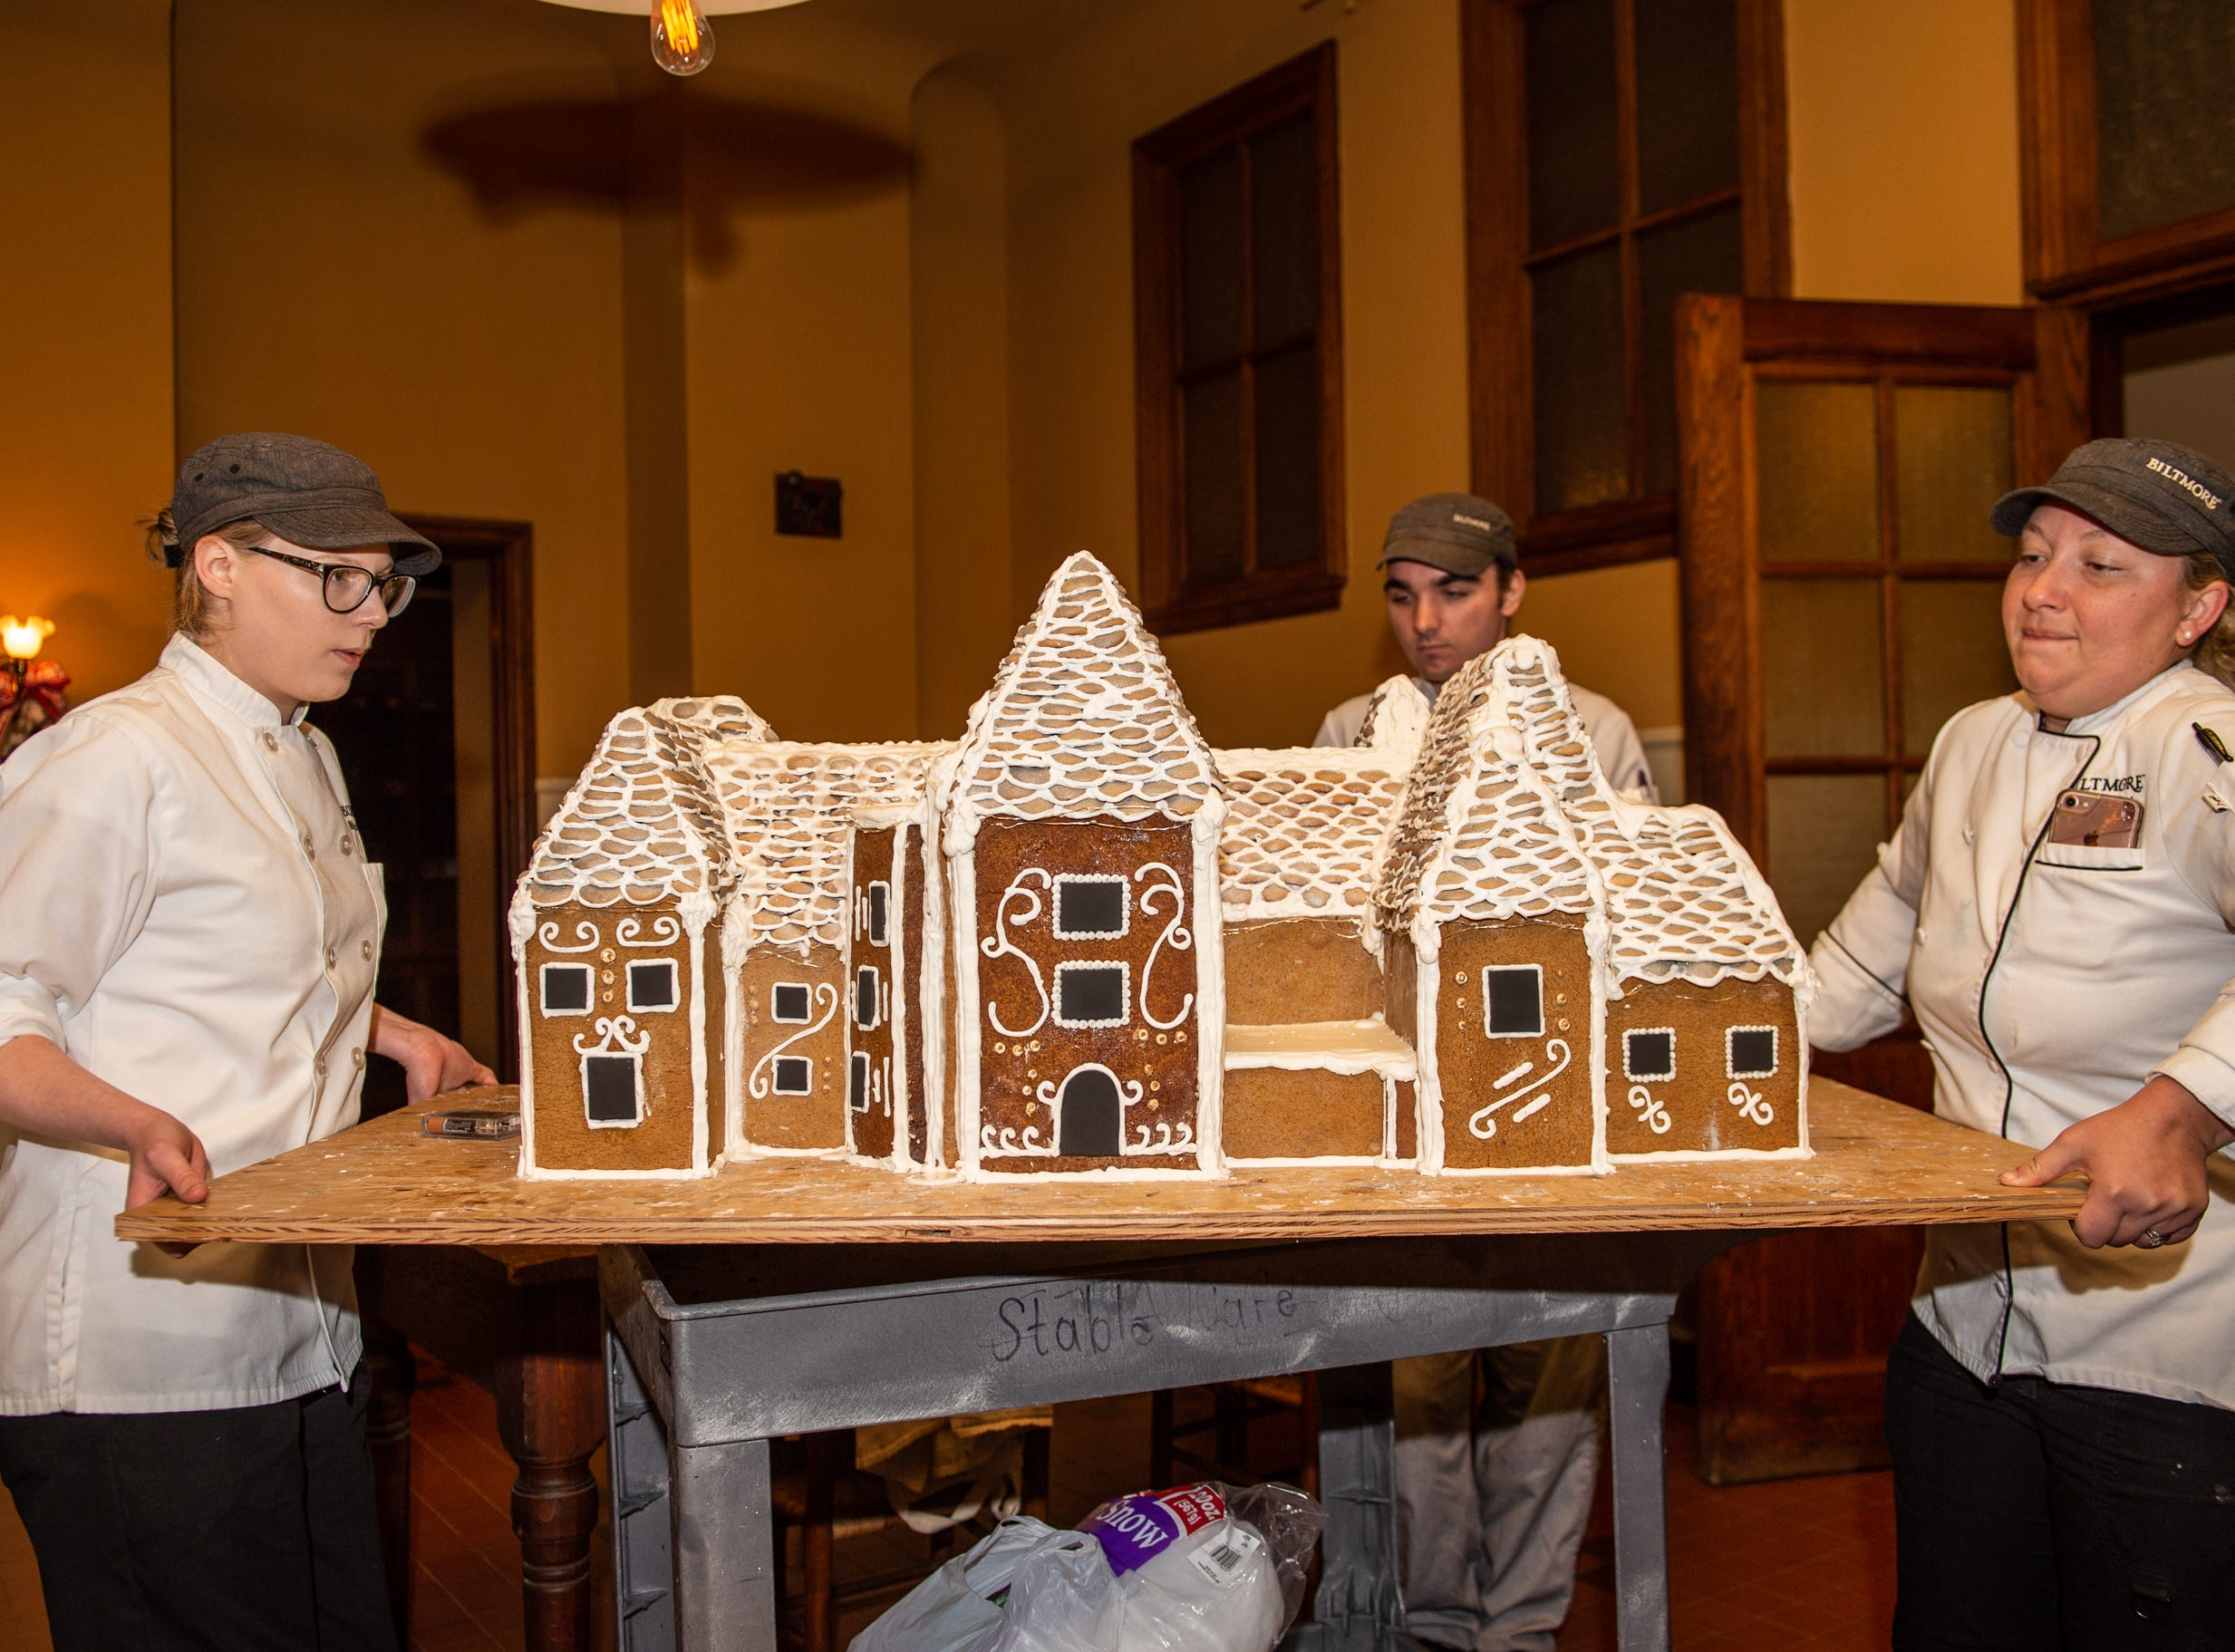 Biltmore pastry chef Julie Scheibel, right, pastry cook Deron Noel, center, and pastry demi chef Megan Moorhead, left, move the gingerbread house into place in the Biltmore House kitchen the morning of Nov. 2, 2018.